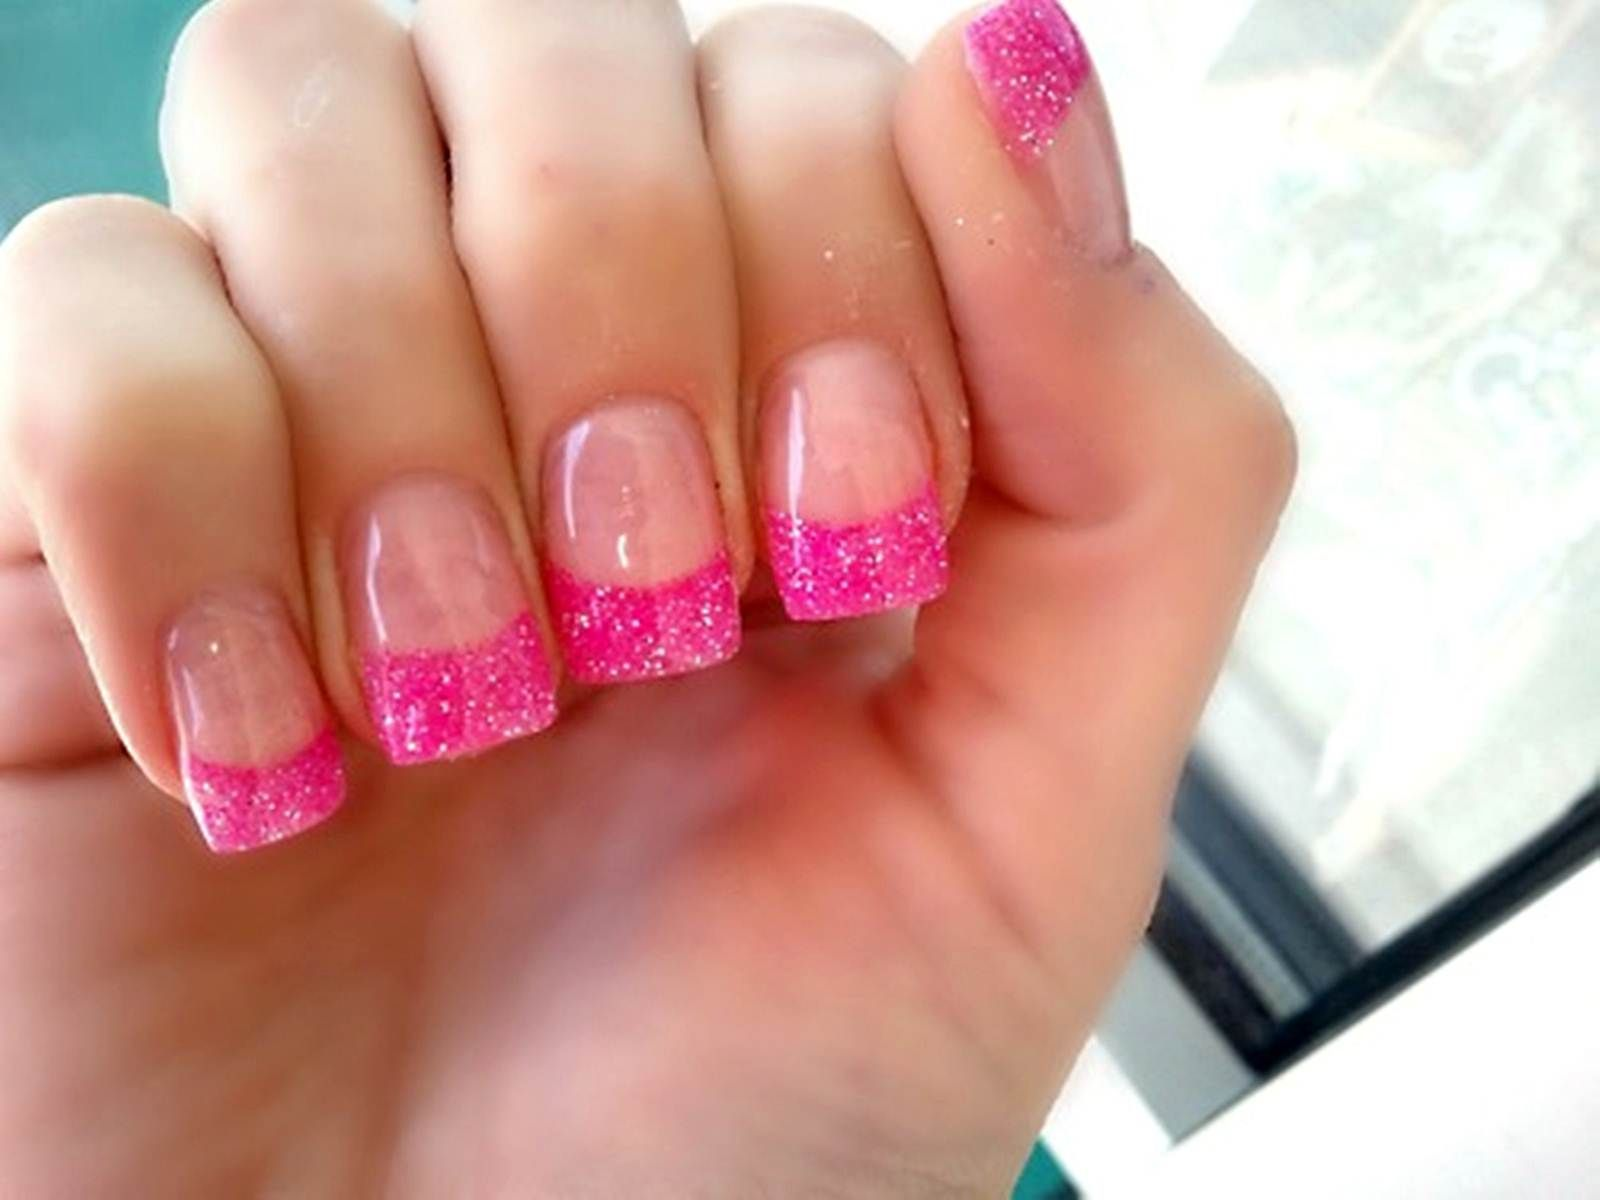 acrylic nail designs glitter tips simple nail design ideas acrylic nail designs glitter tips simple nail - Nail Tip Designs Ideas